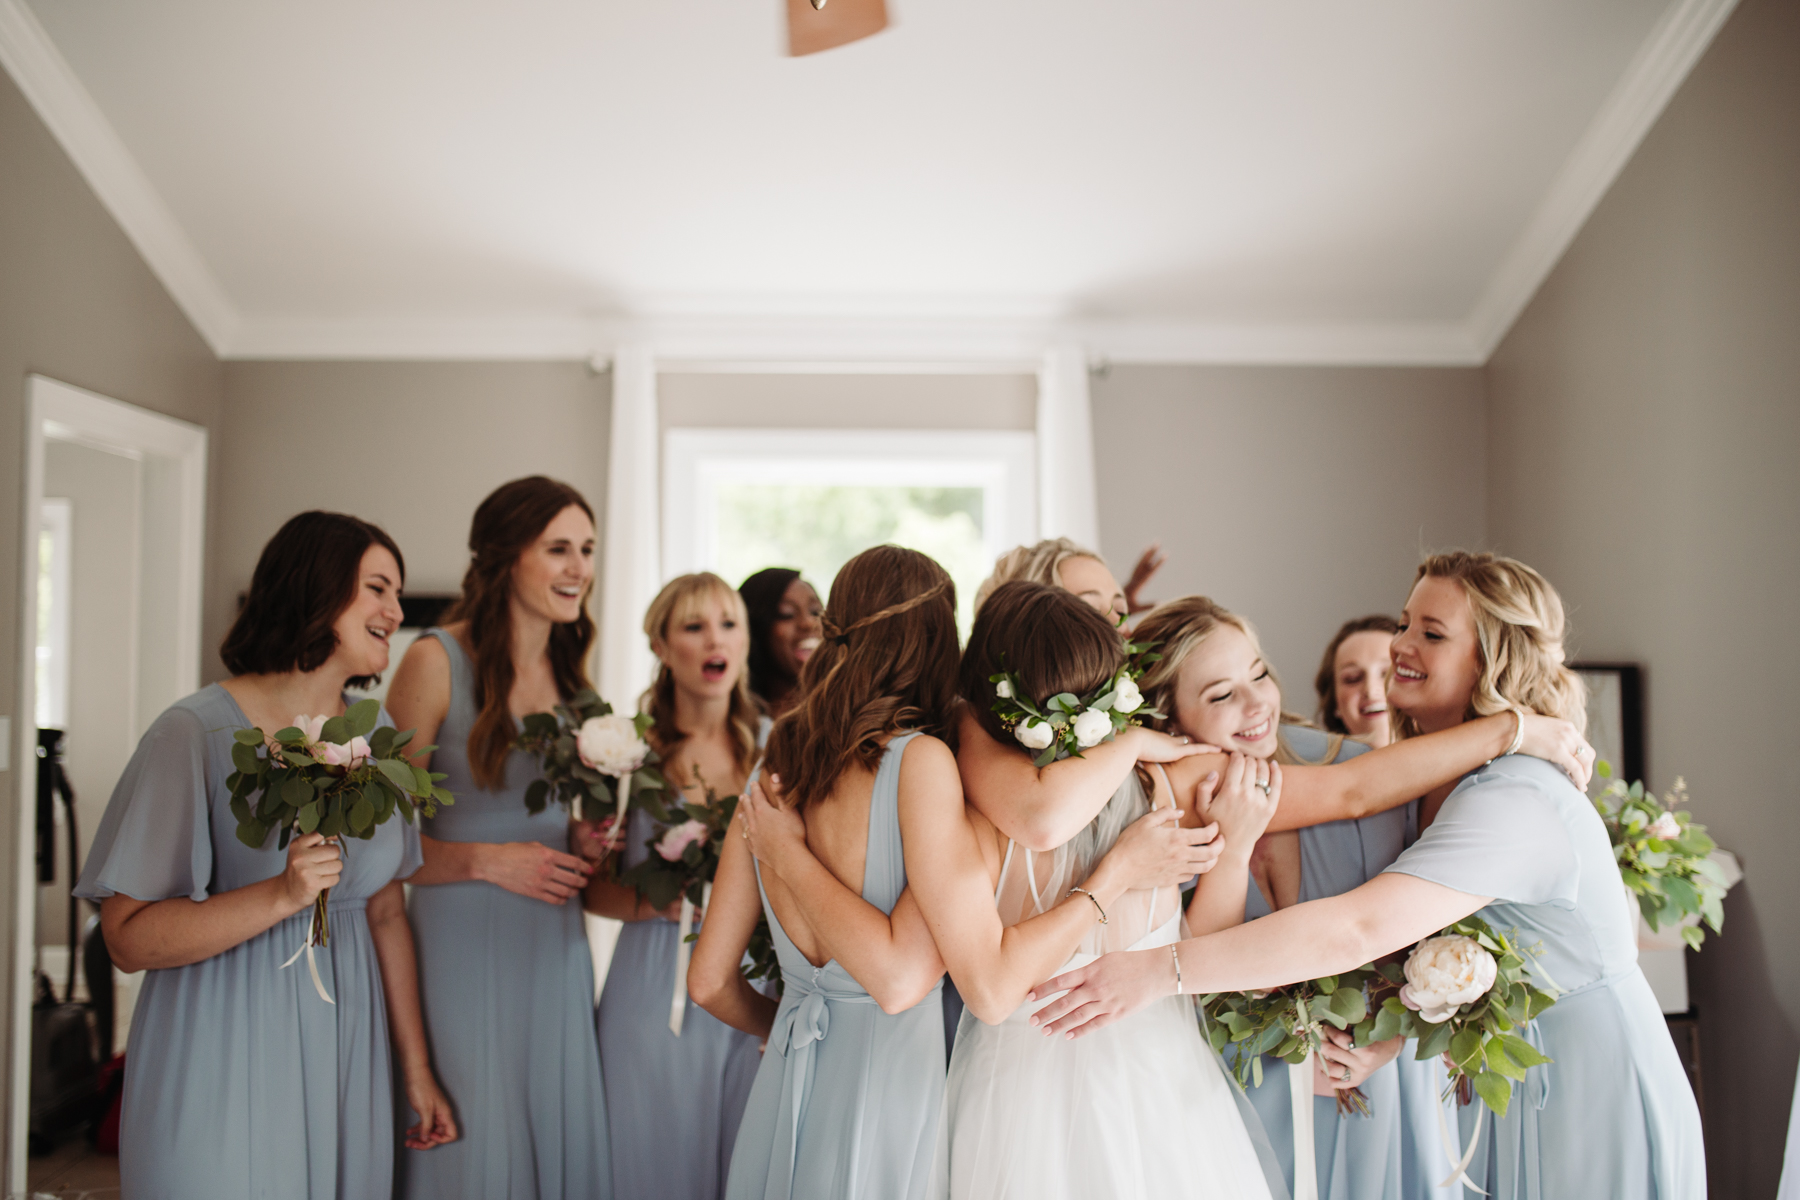 Bridesmaids reveal before a Sunny summer wedding at Dara's Garden in Knoxville, Tennessee